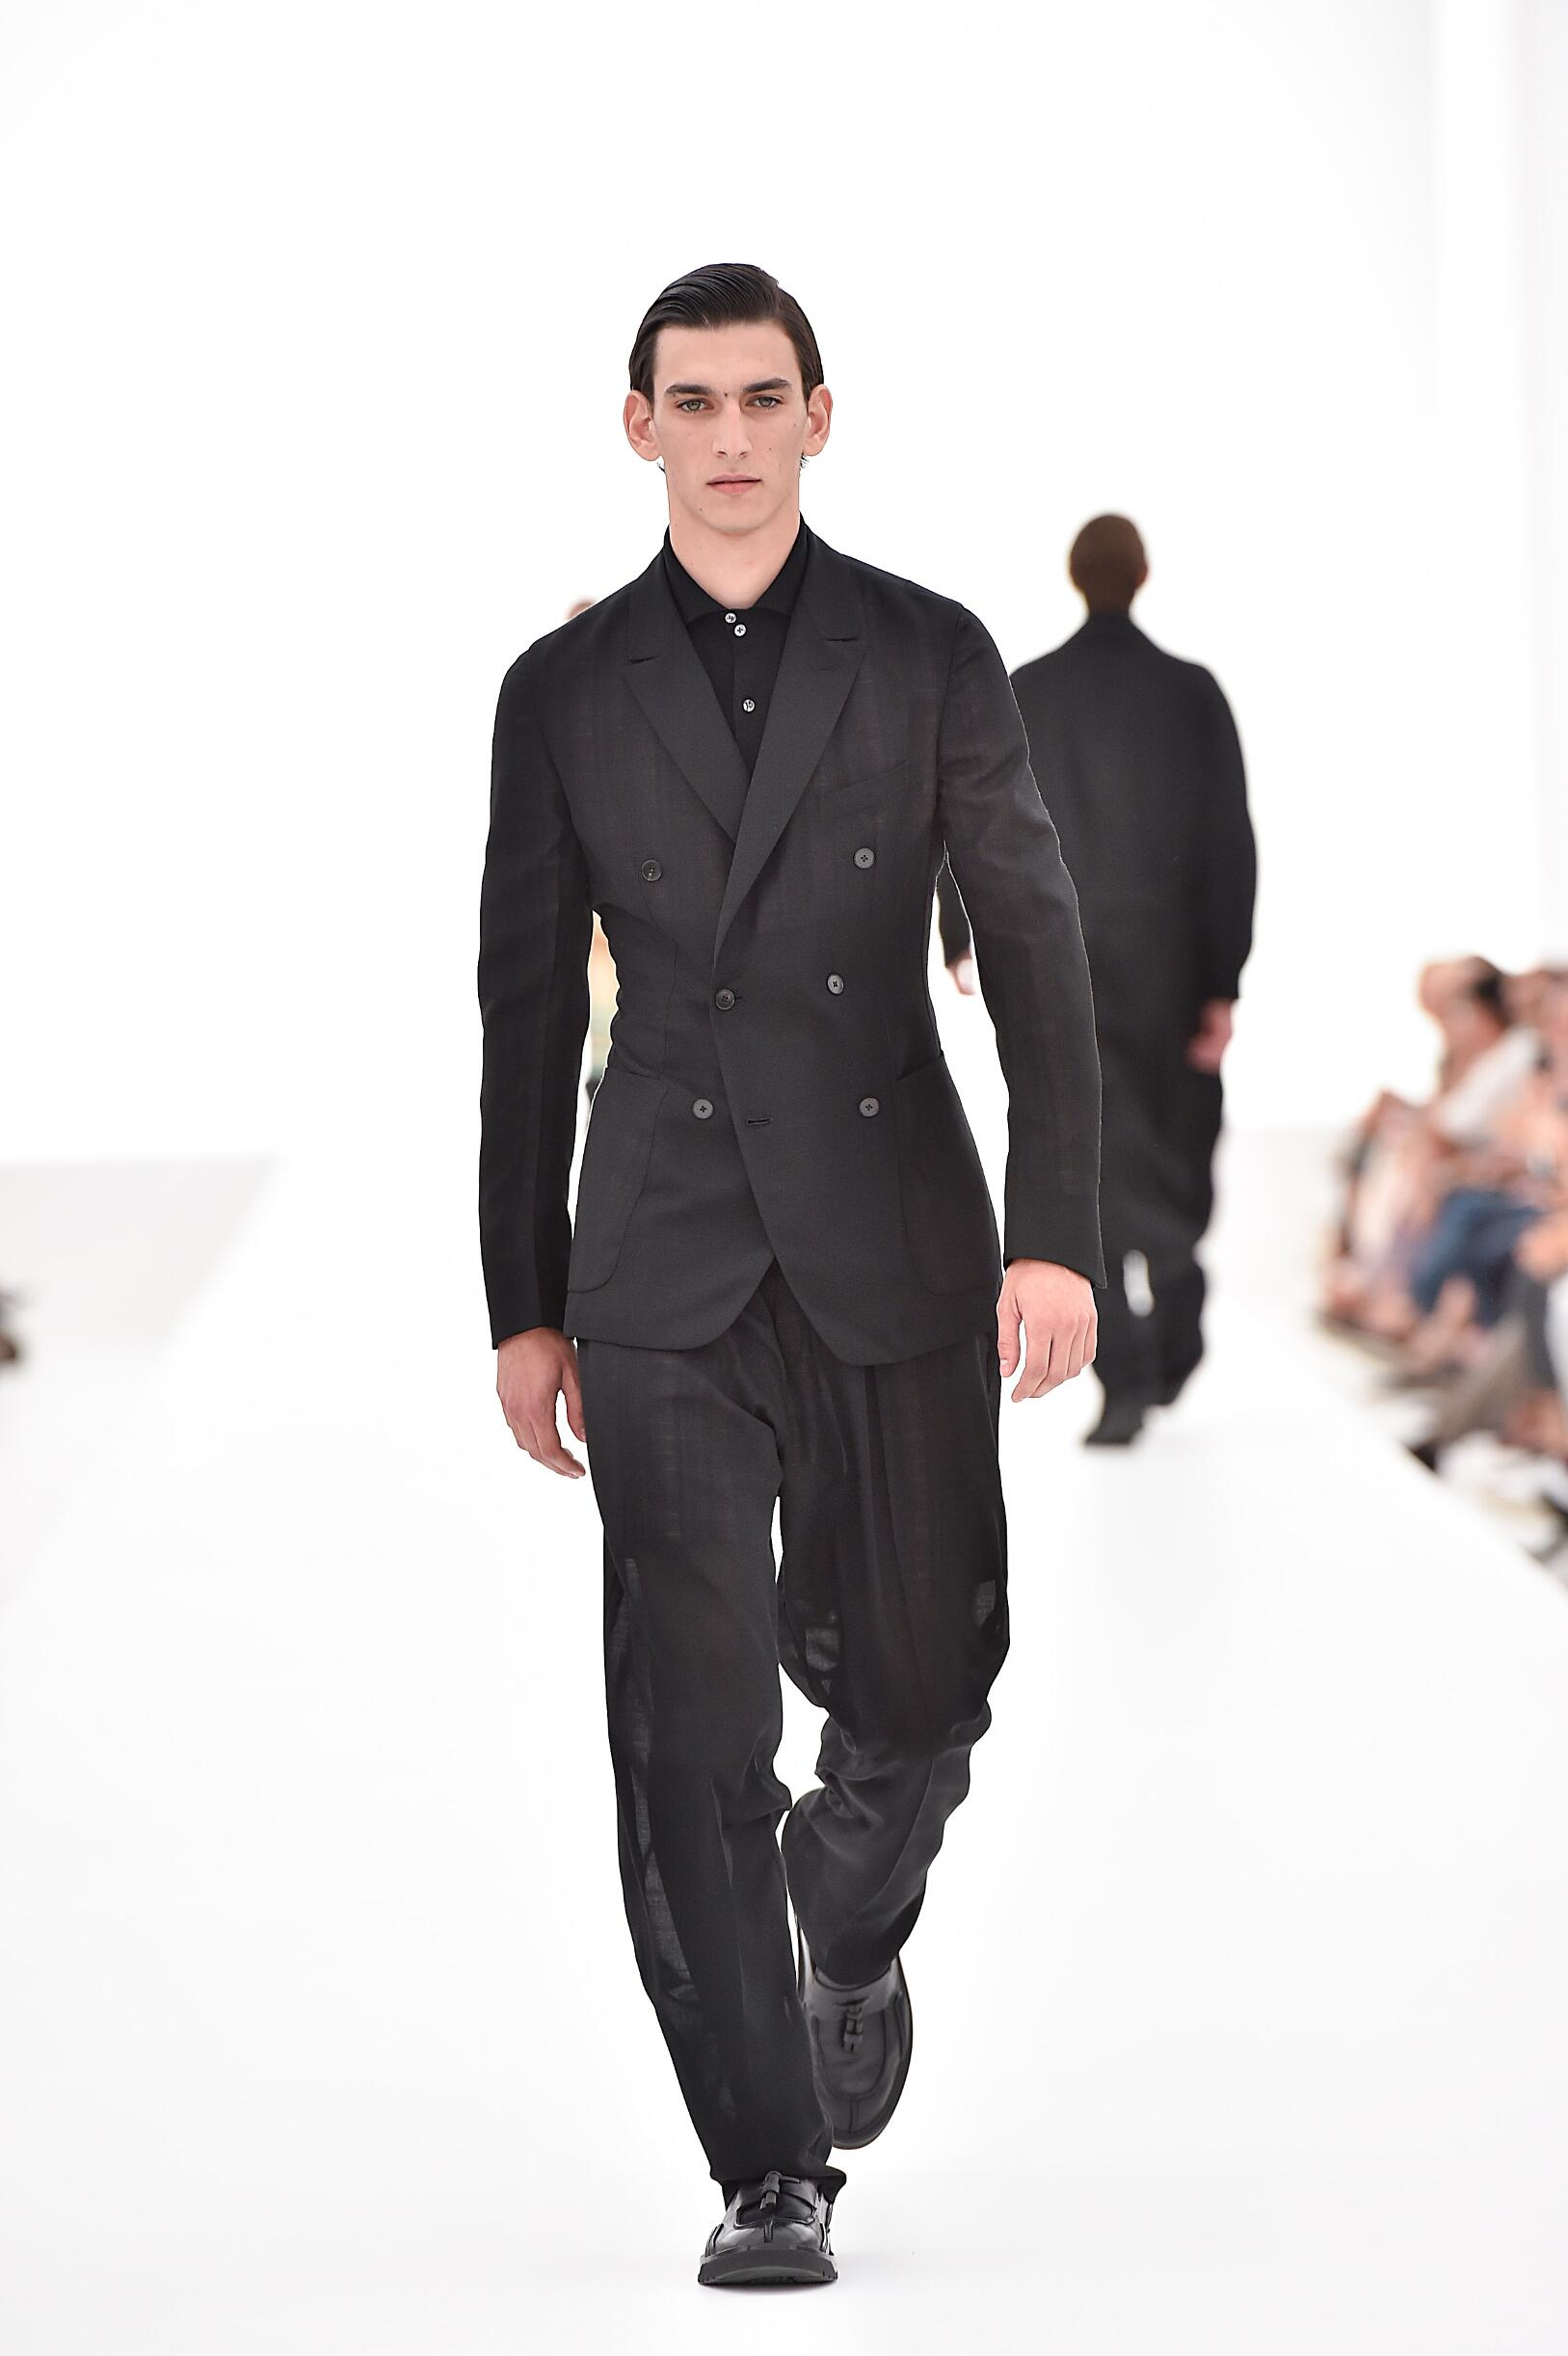 Ermenegildo Zegna Couture Spring Summer 2016 Menswear Collection Milan Fashion Week Fashion Show